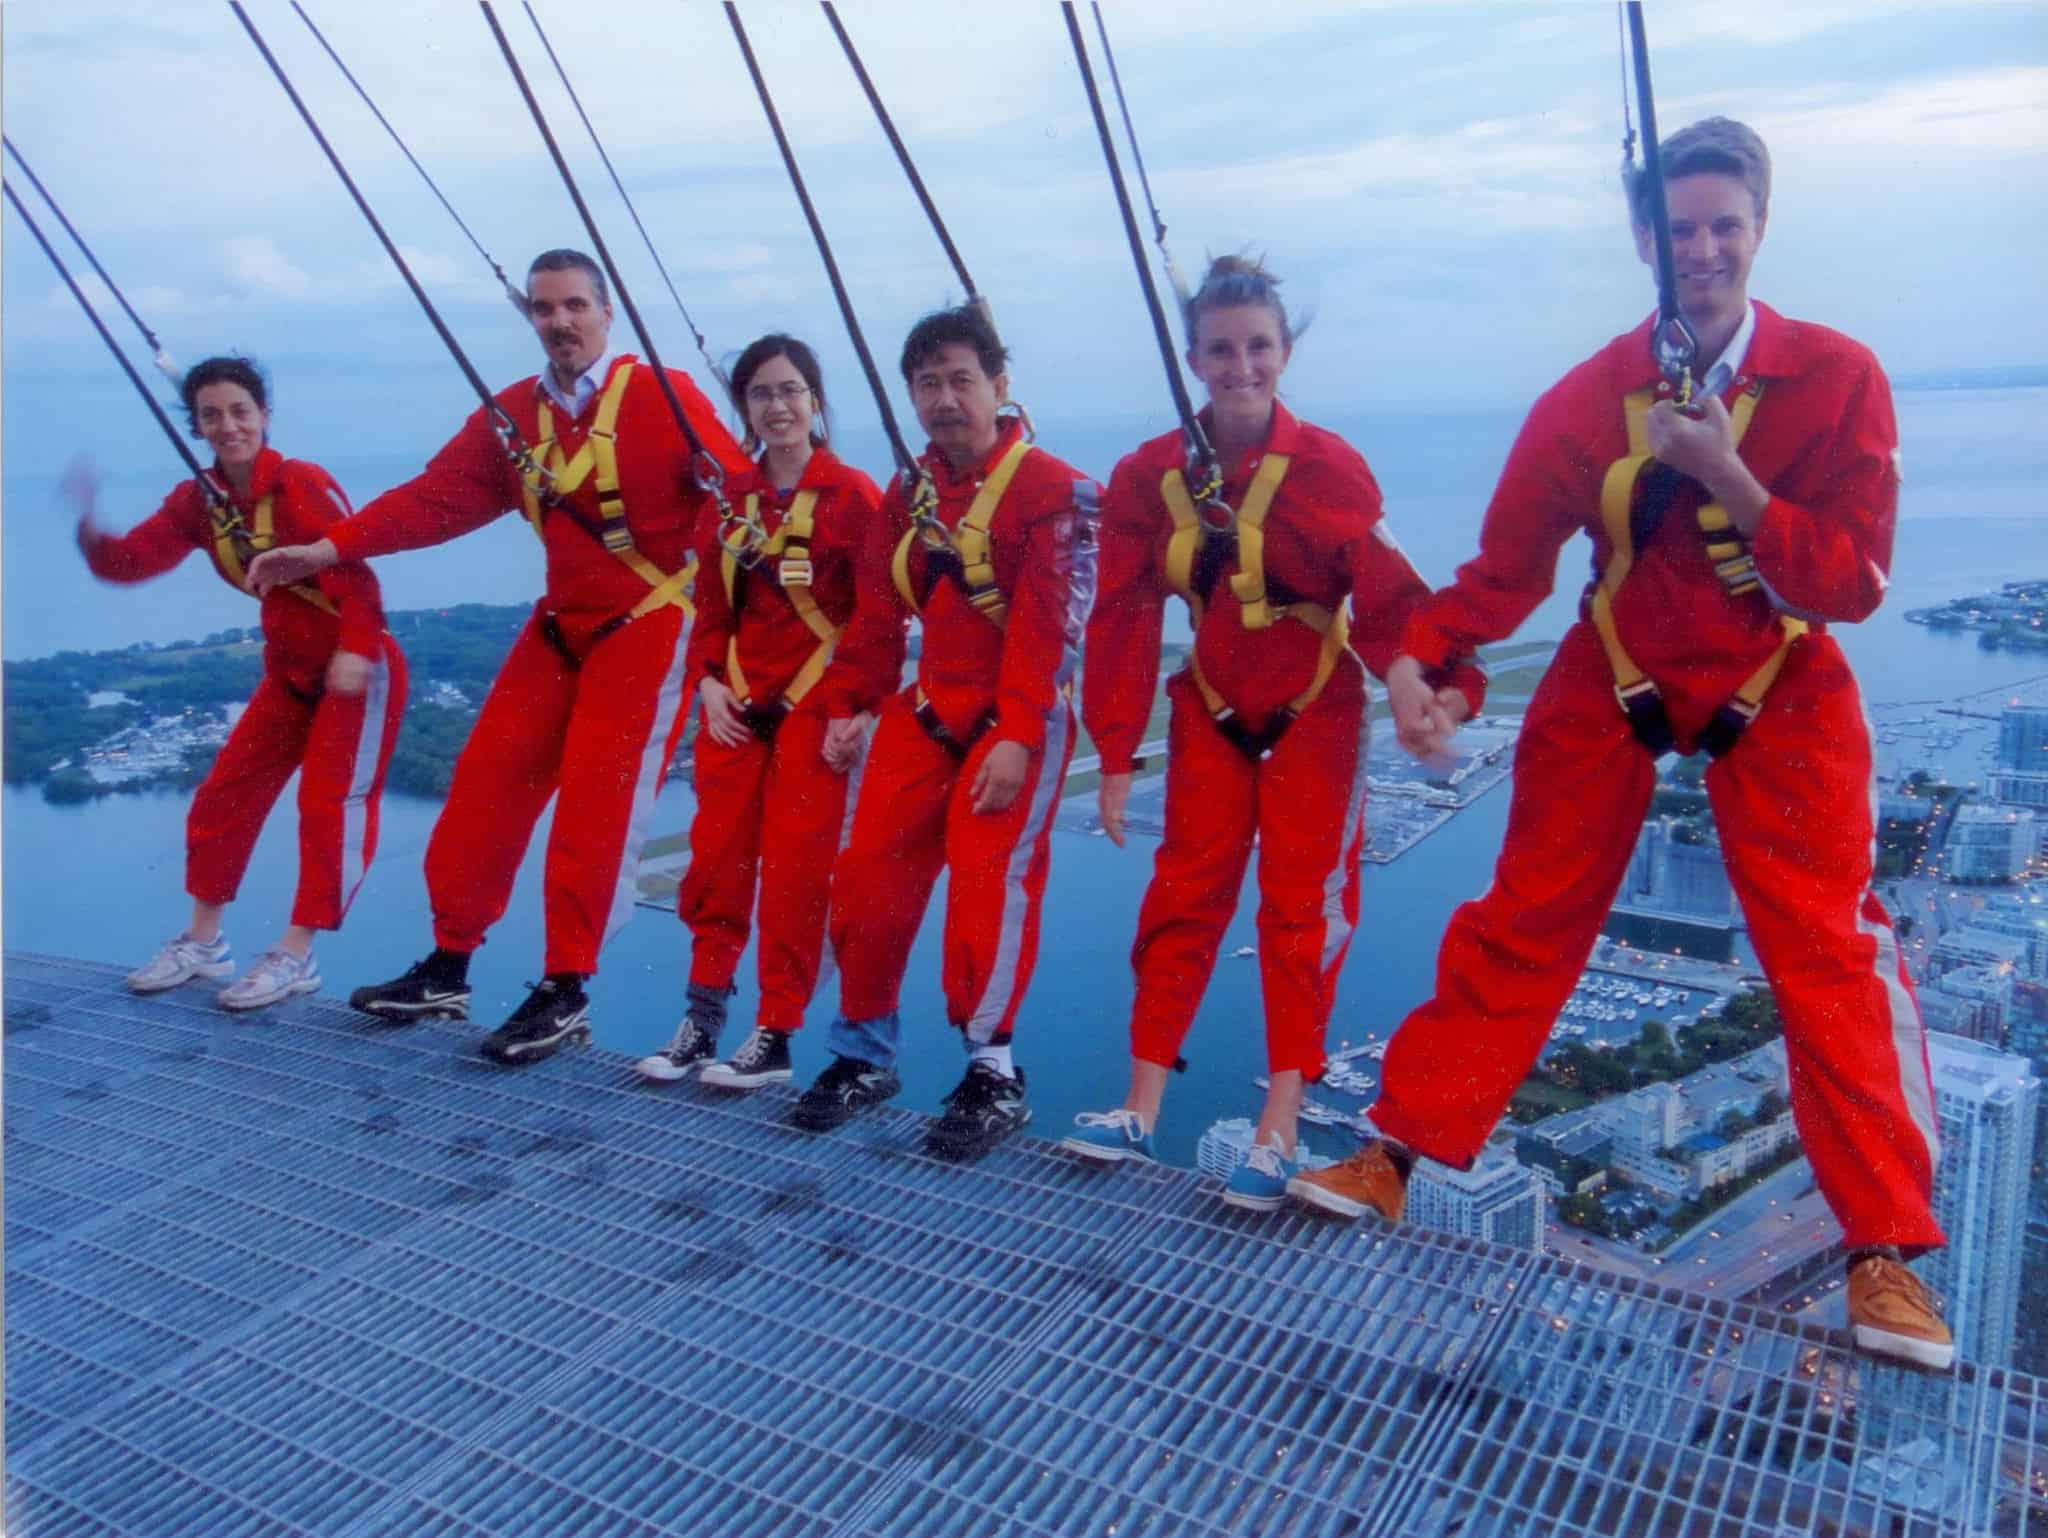 The edgewalk in Toronto top 11 must things to experience in Toronto